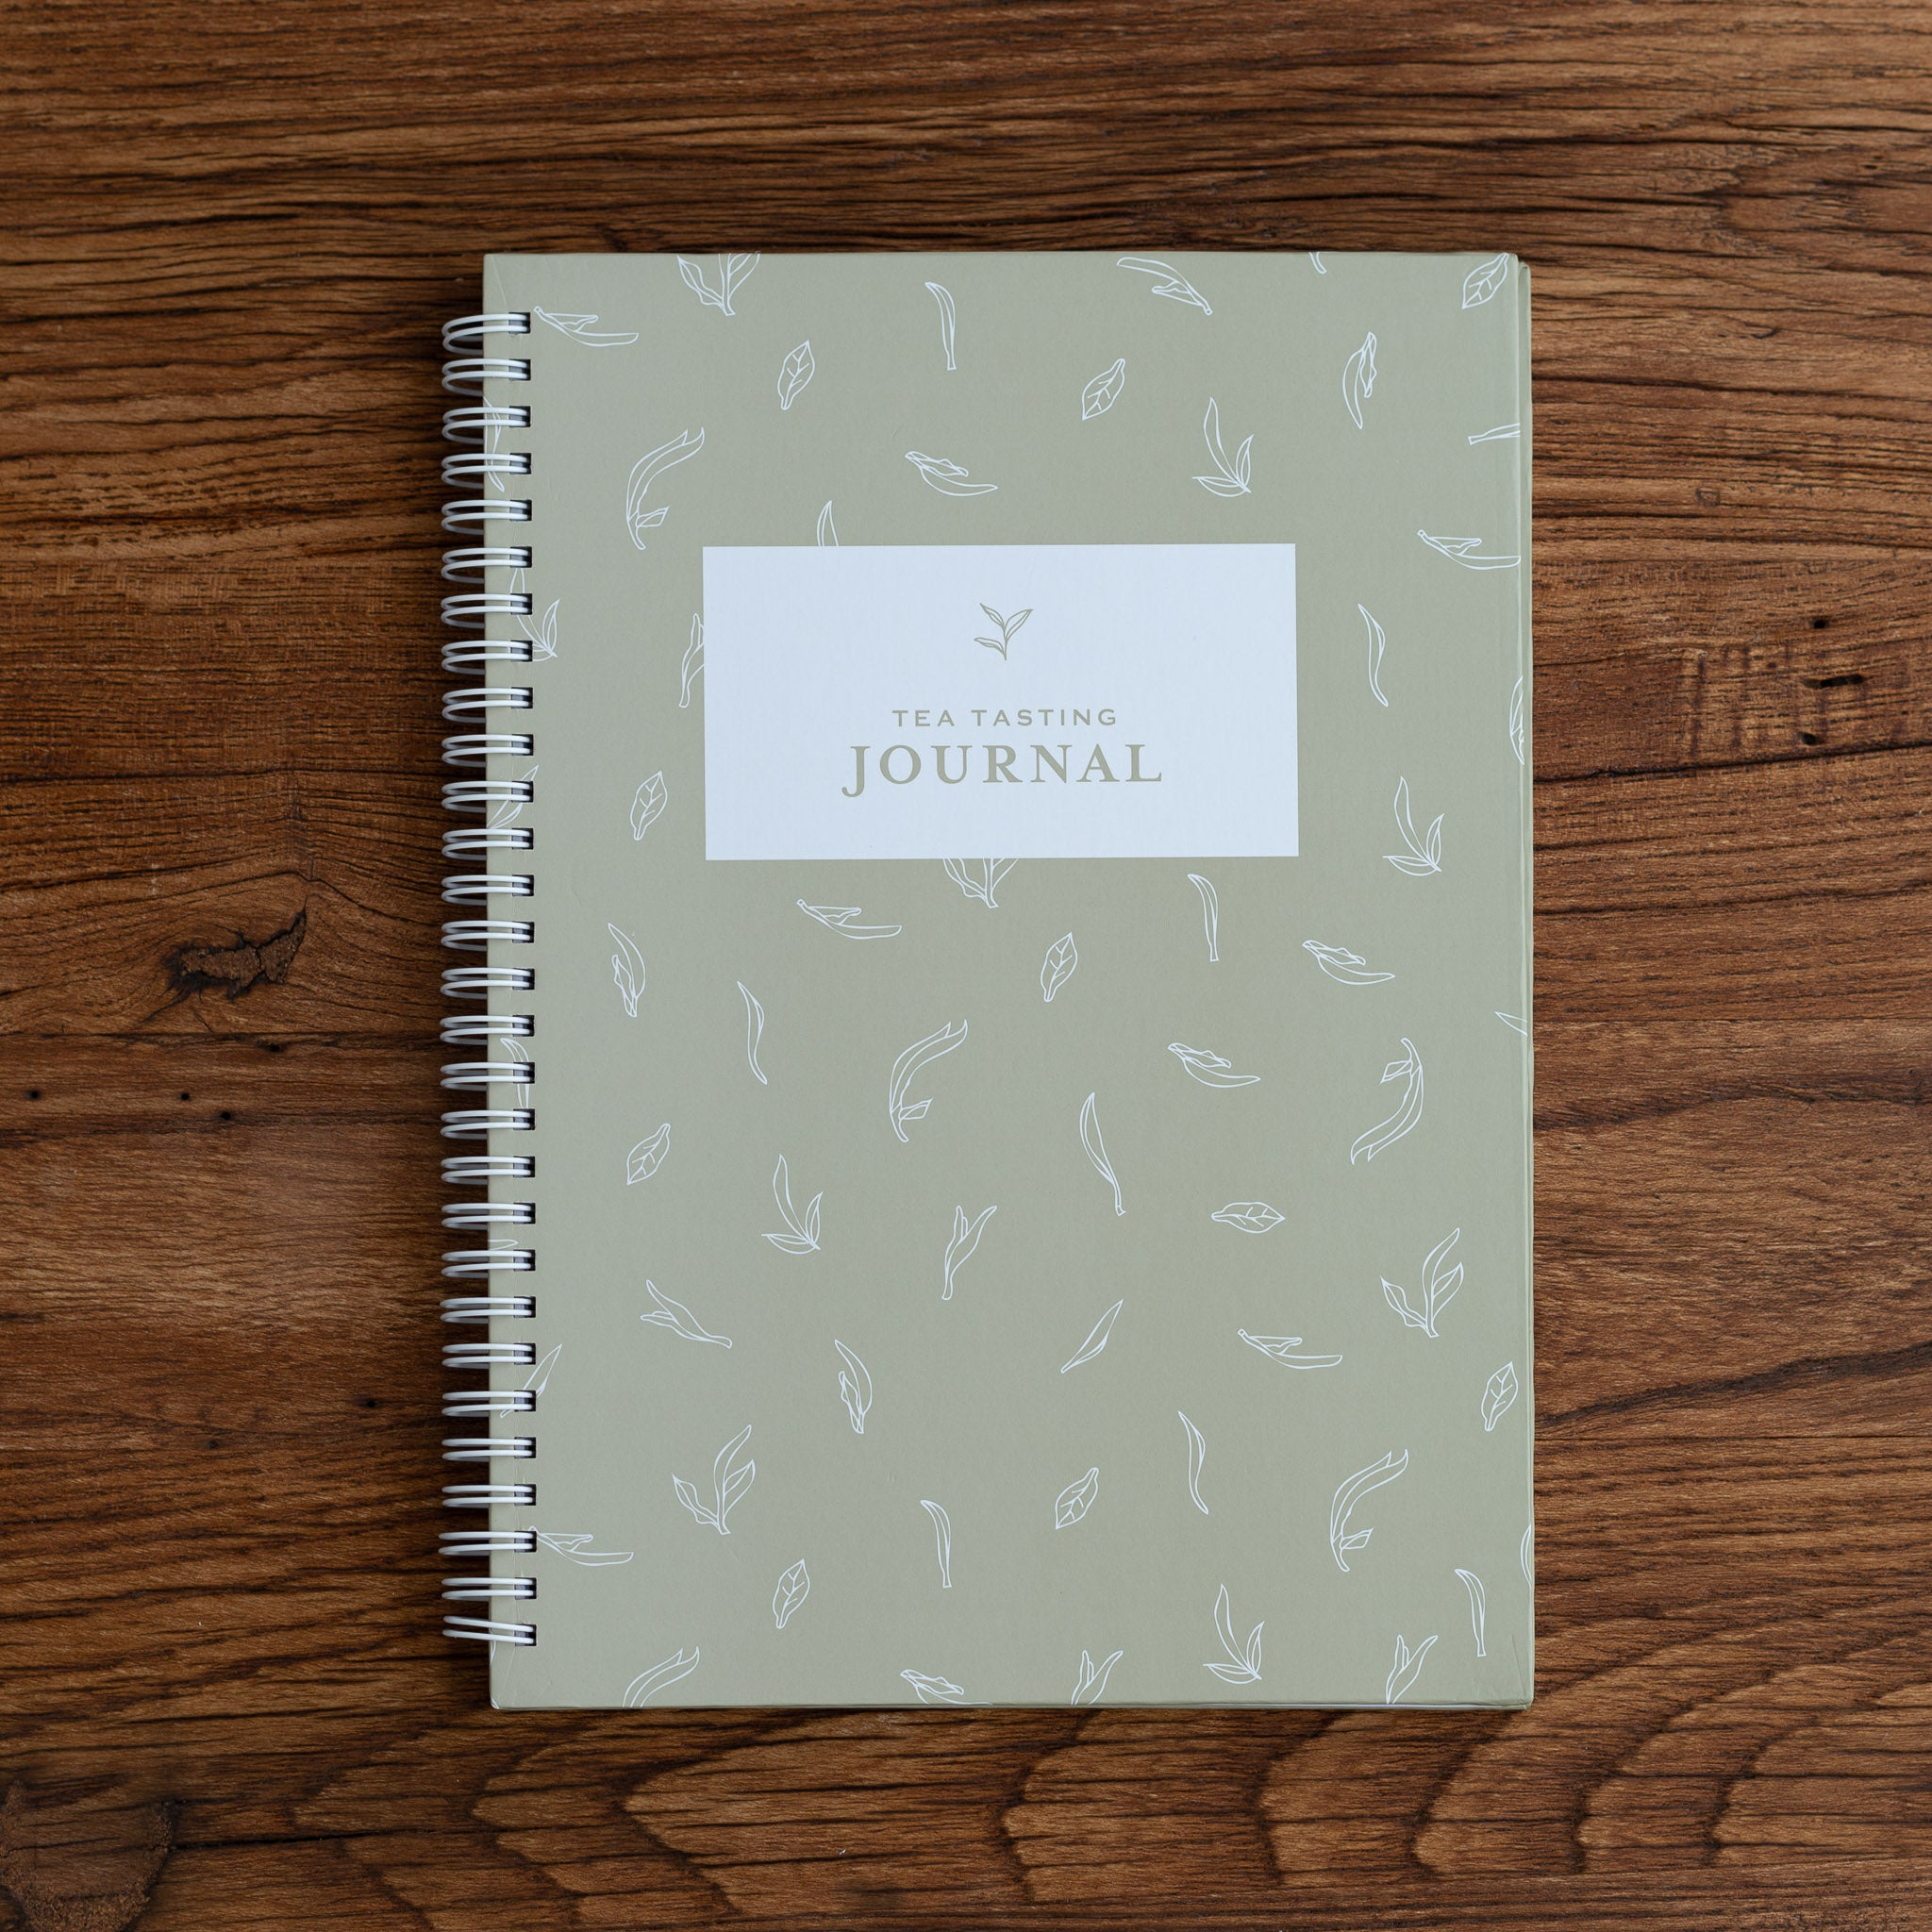 Tea Tasting Journal